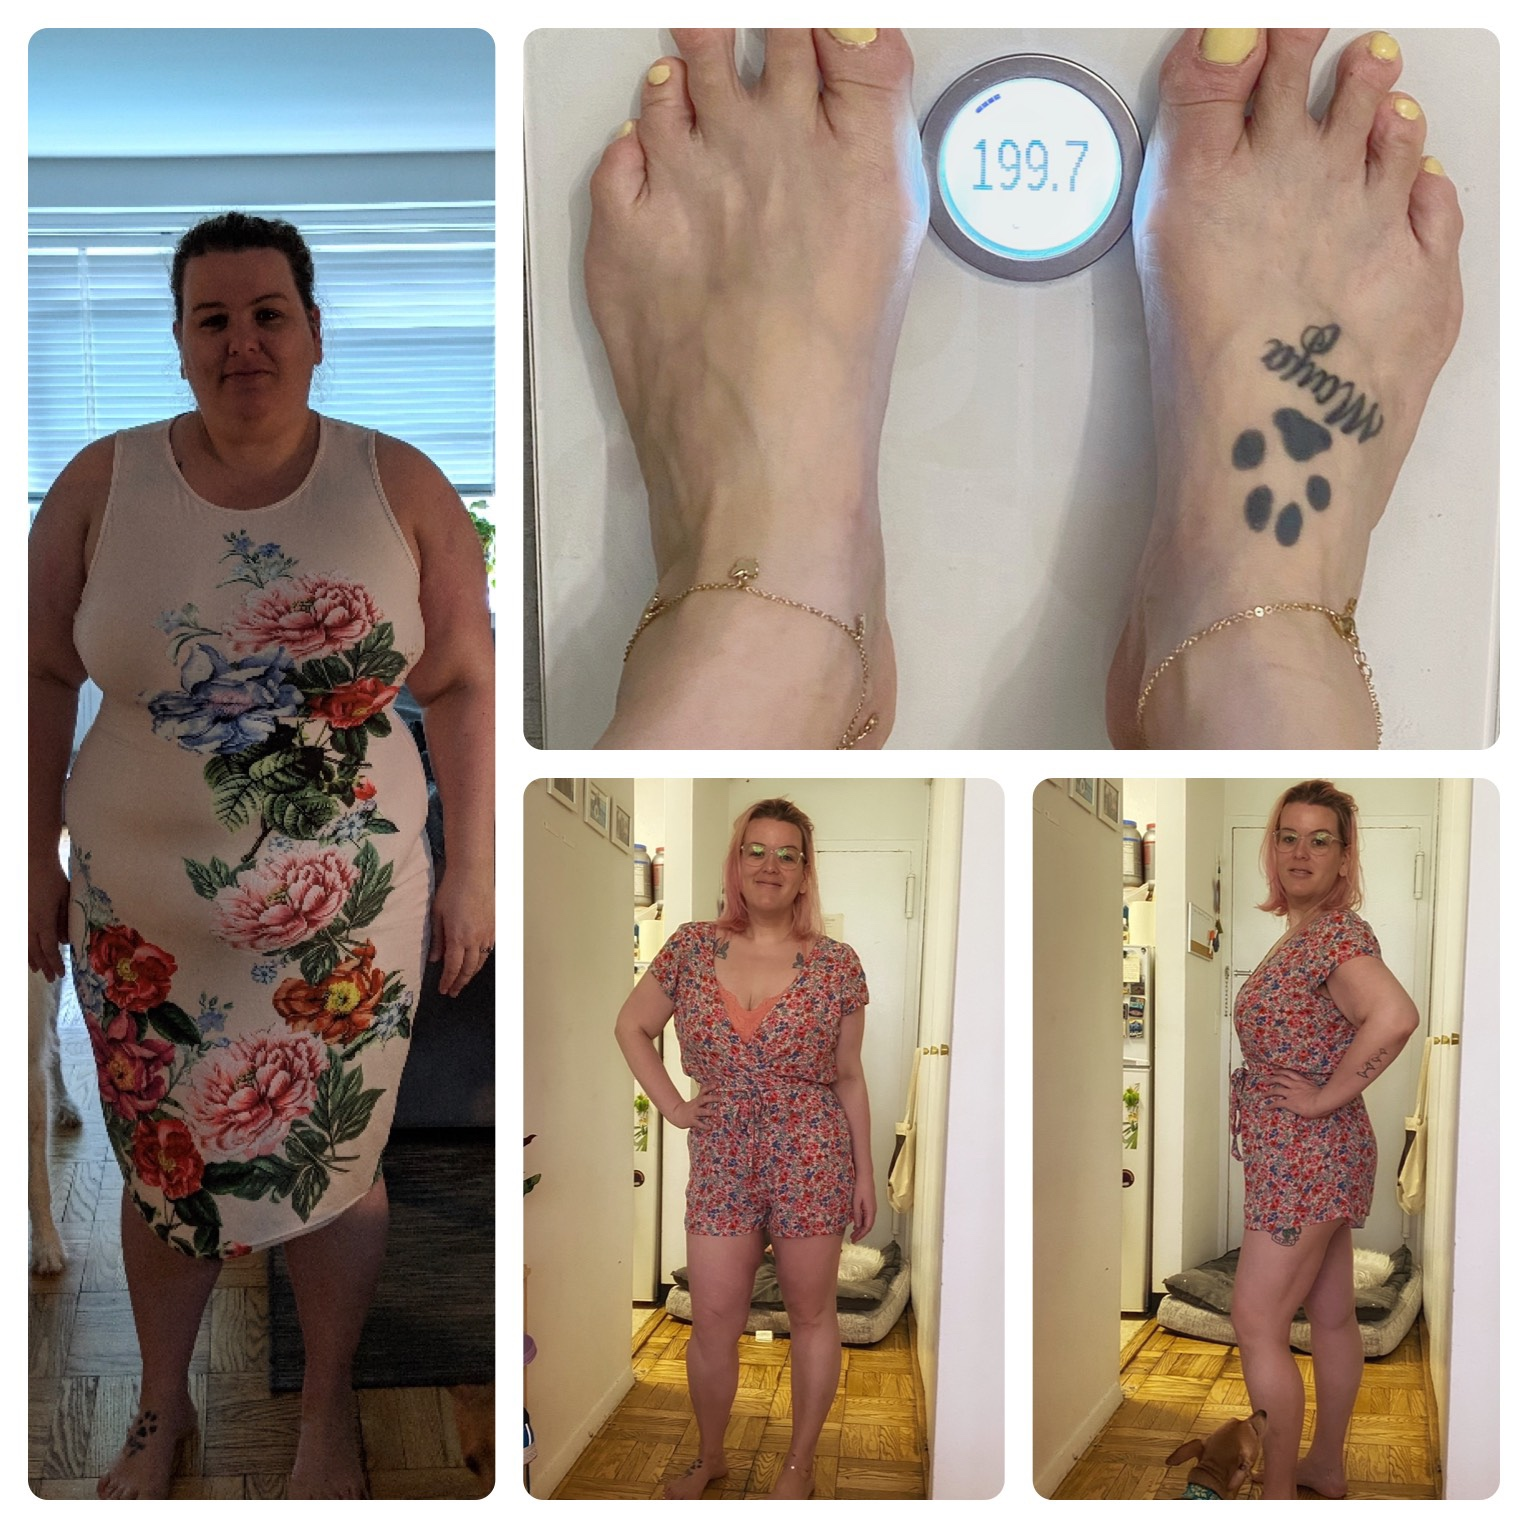 5 feet 8 Female Before and After 116 lbs Fat Loss 315 lbs to 199 lbs